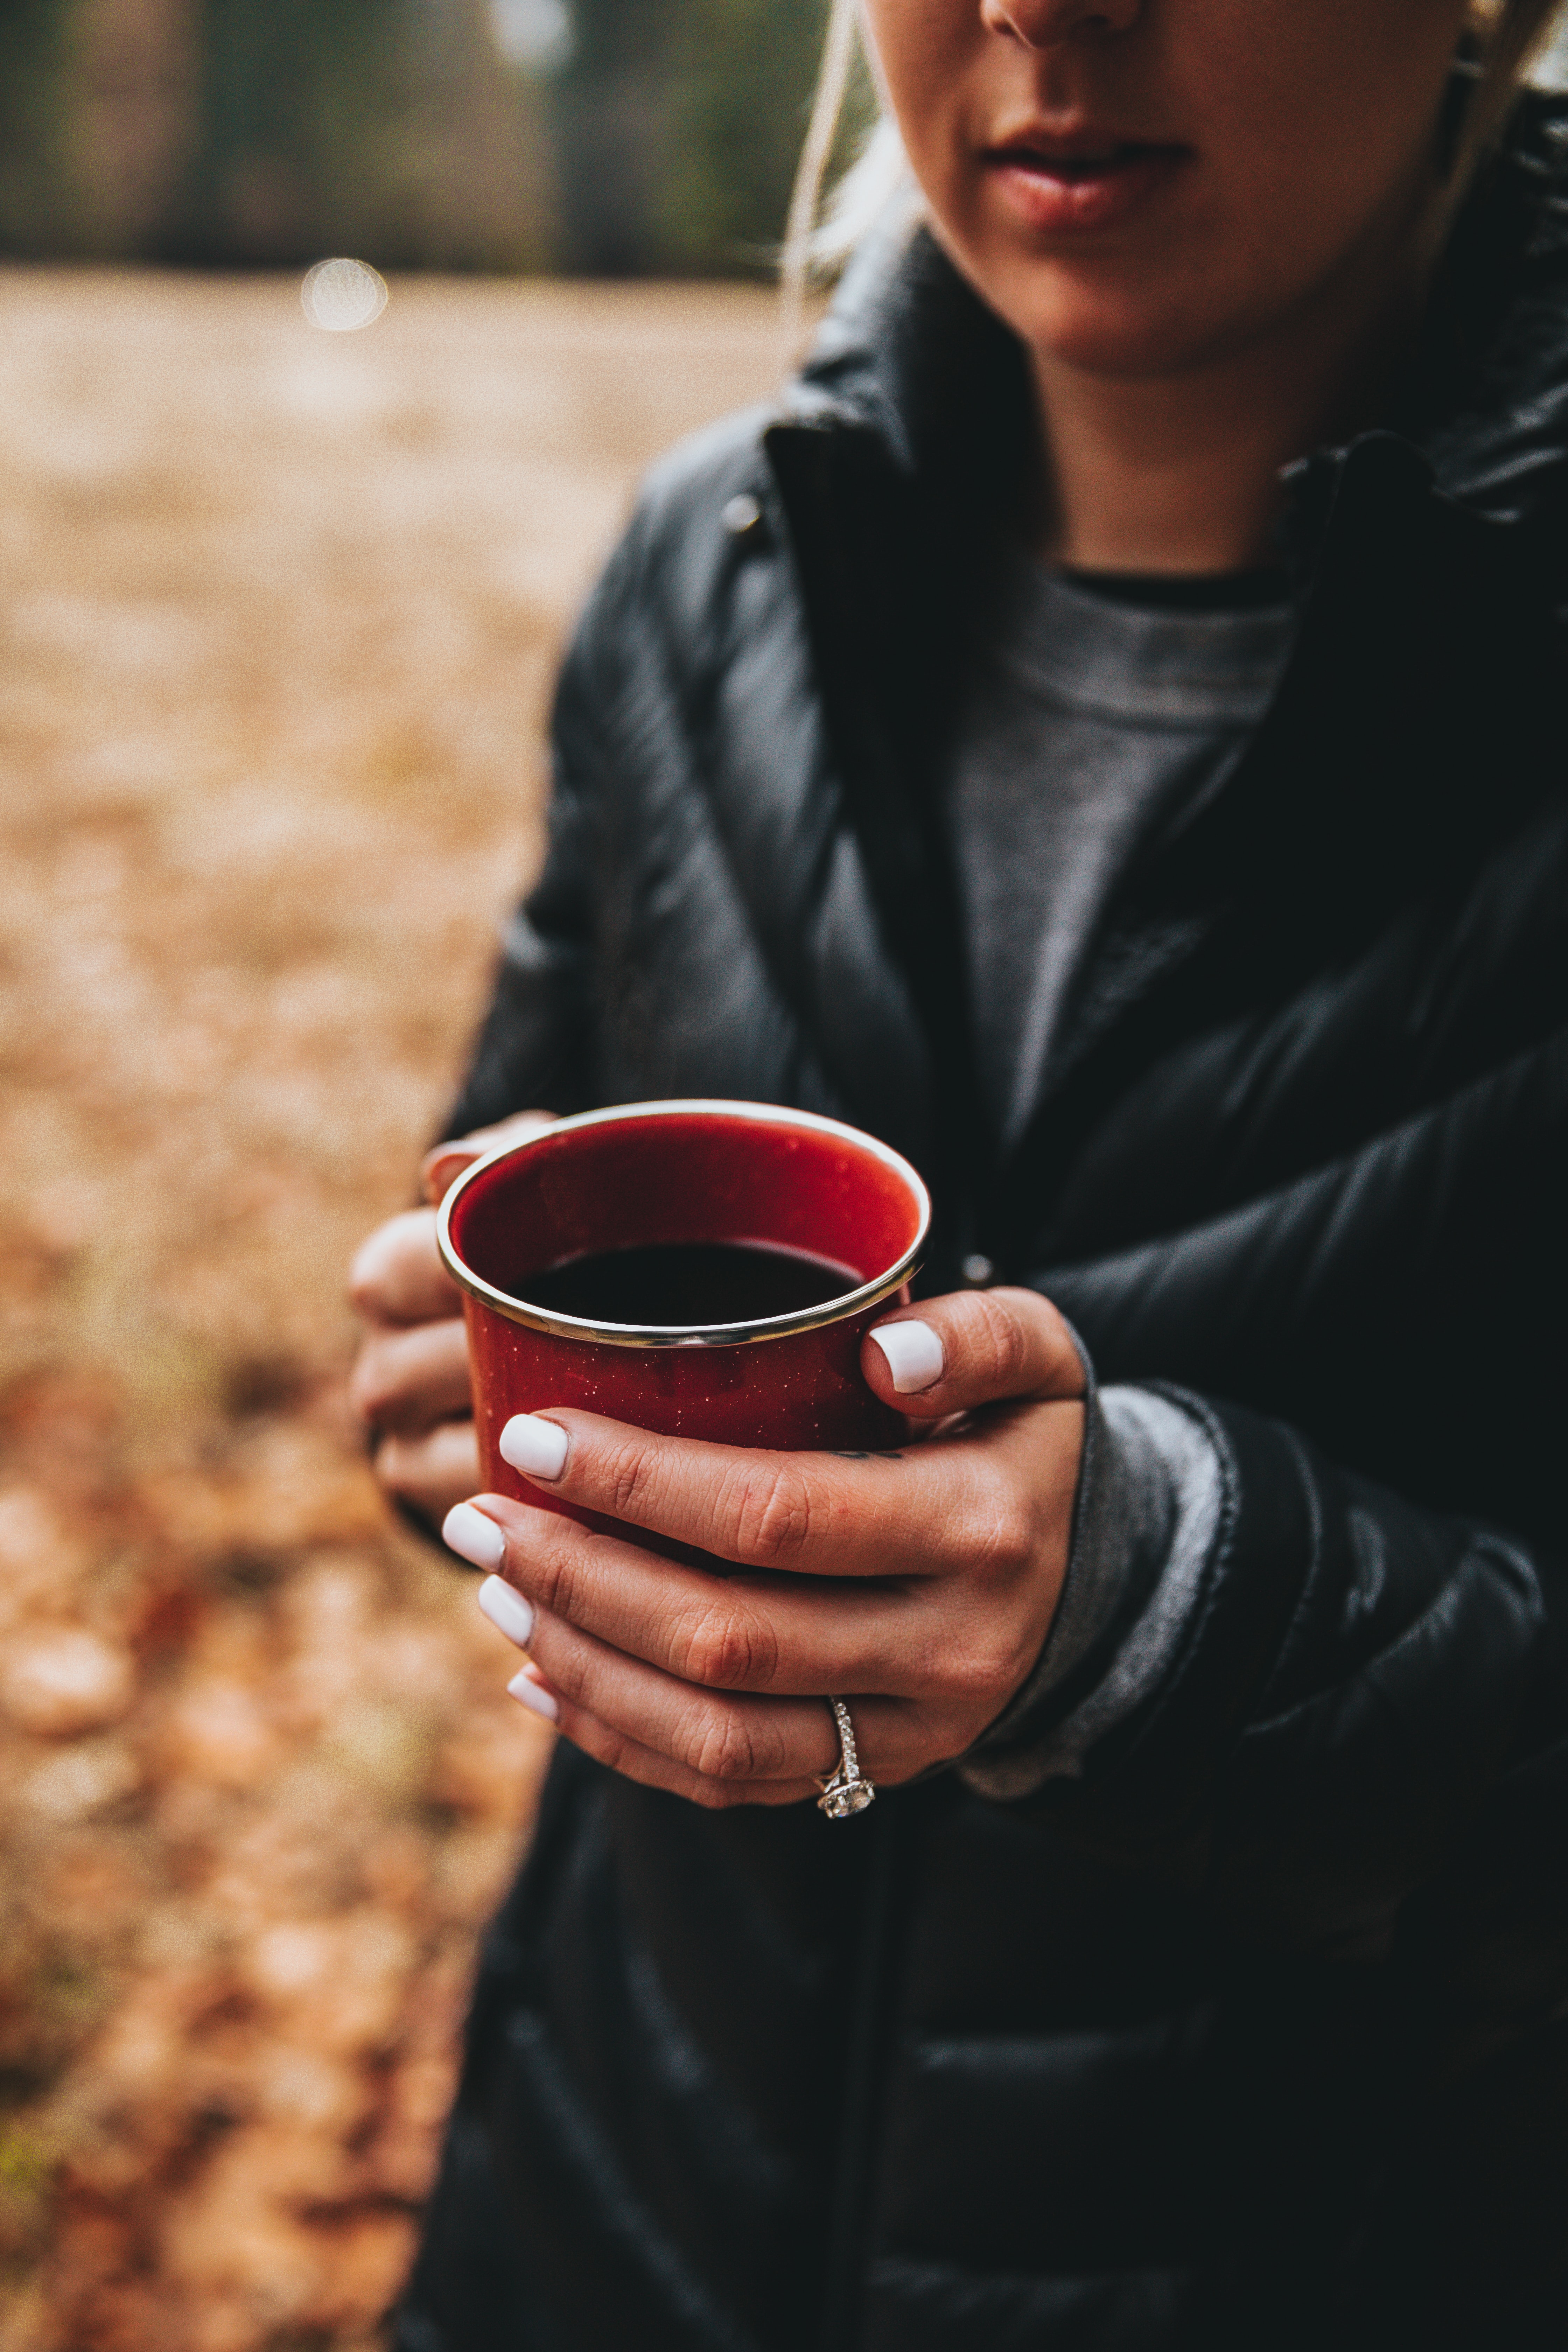 woman holding black liquid-filled red cup selective focus photo